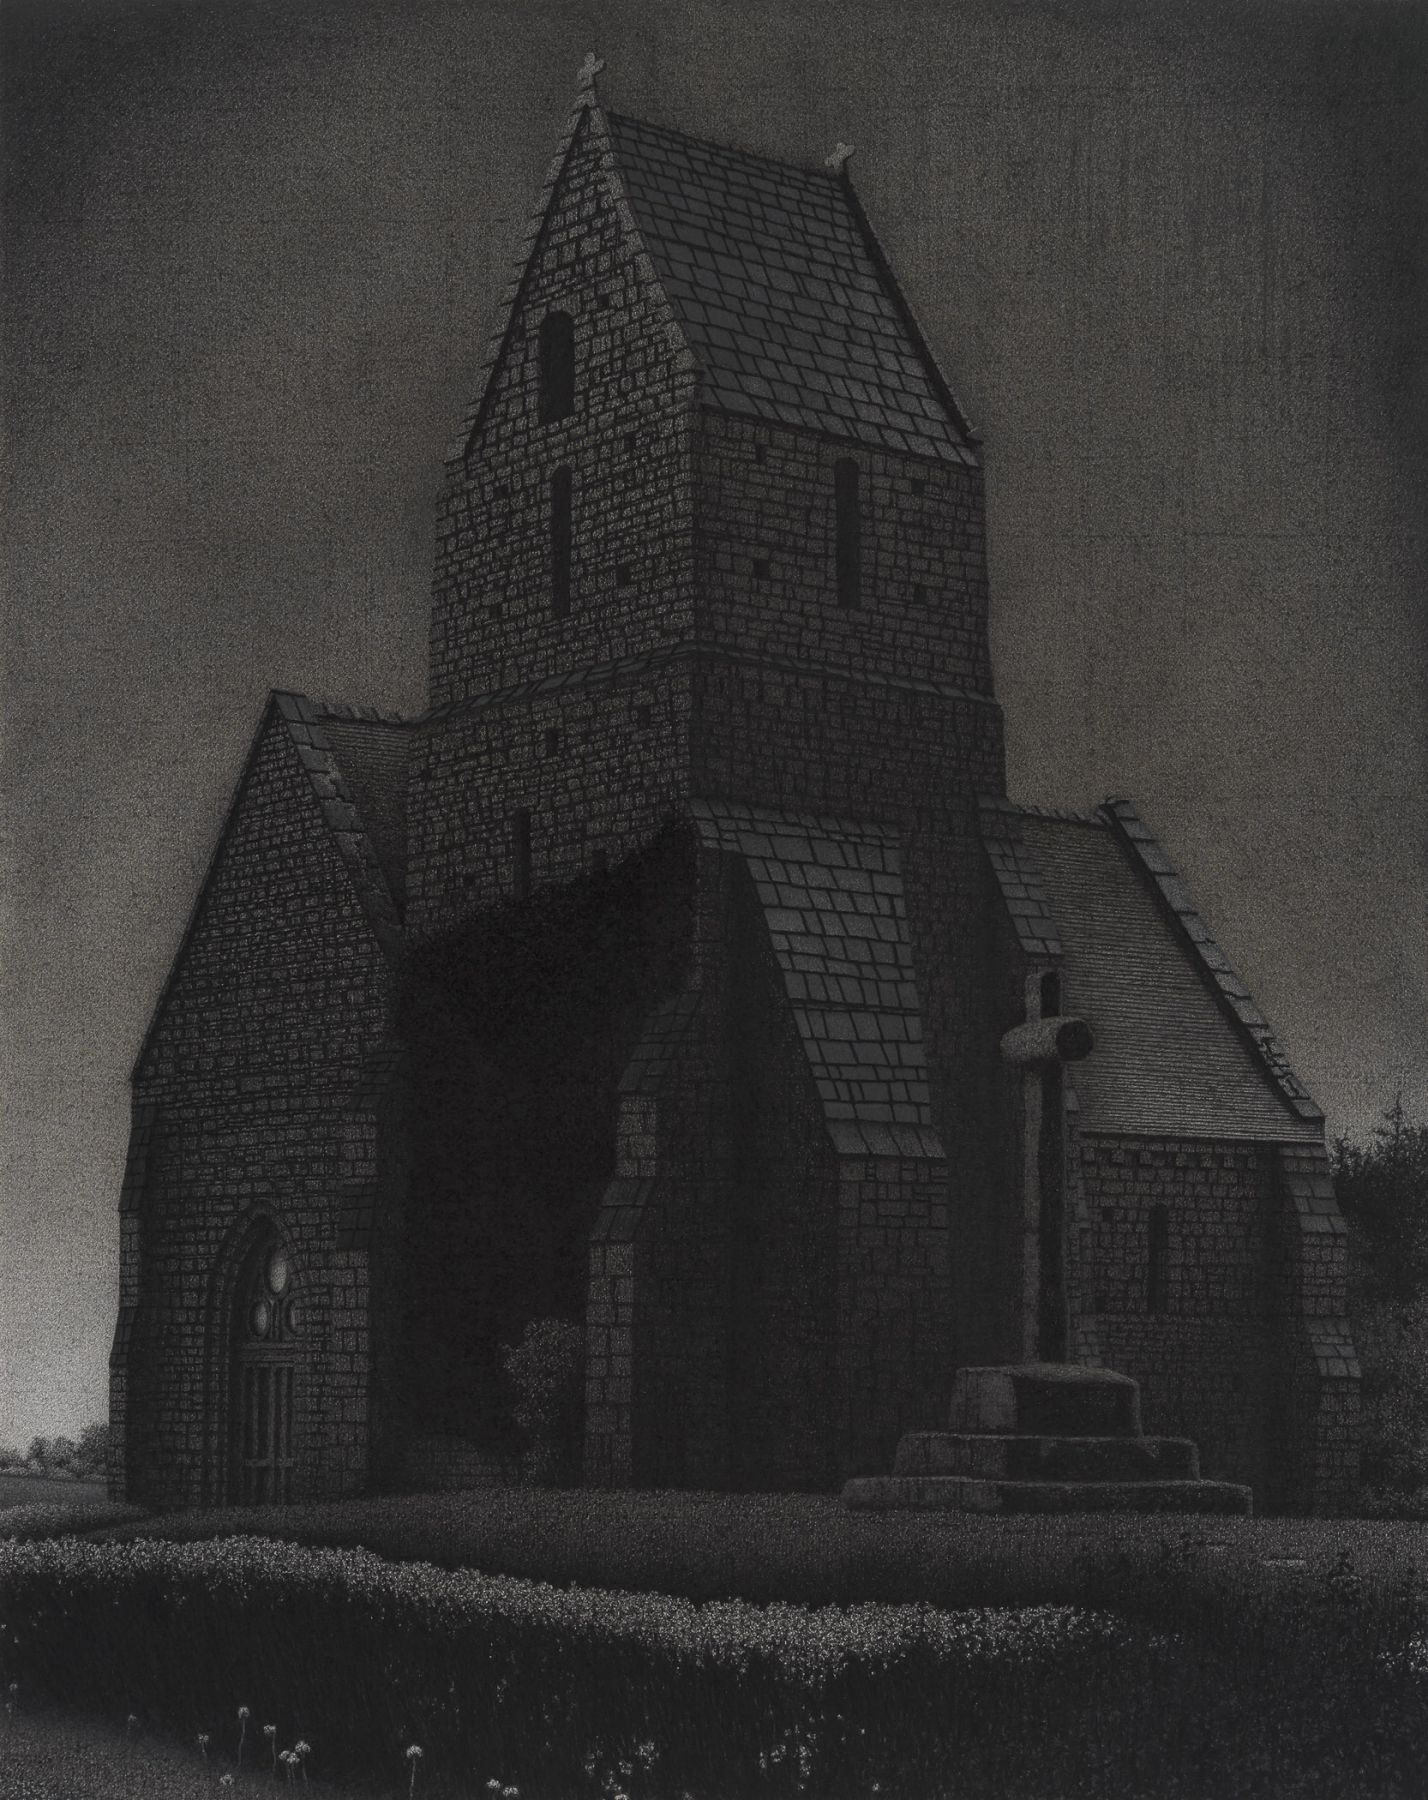 anthony mitri, Chapelle 2, Normandy, France, 2012, charcoal on paper, 39 1/2 x 26 inches